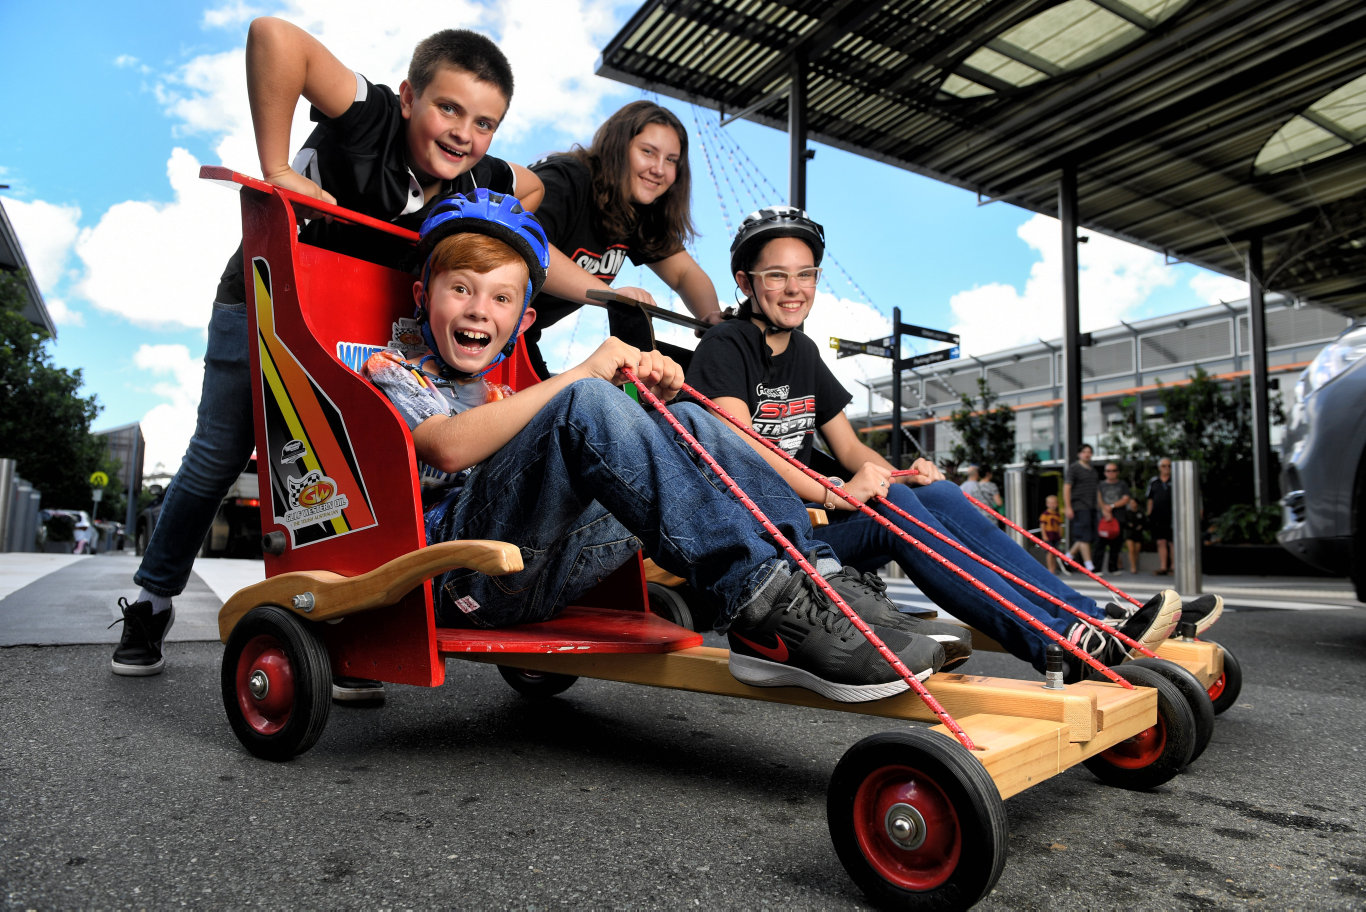 A soap box derby will be held at Orion Shopping Centre. (clockwise from back ) James Lowday, Teanah Littlewood, Liezel Gouws and Karl Schulz.